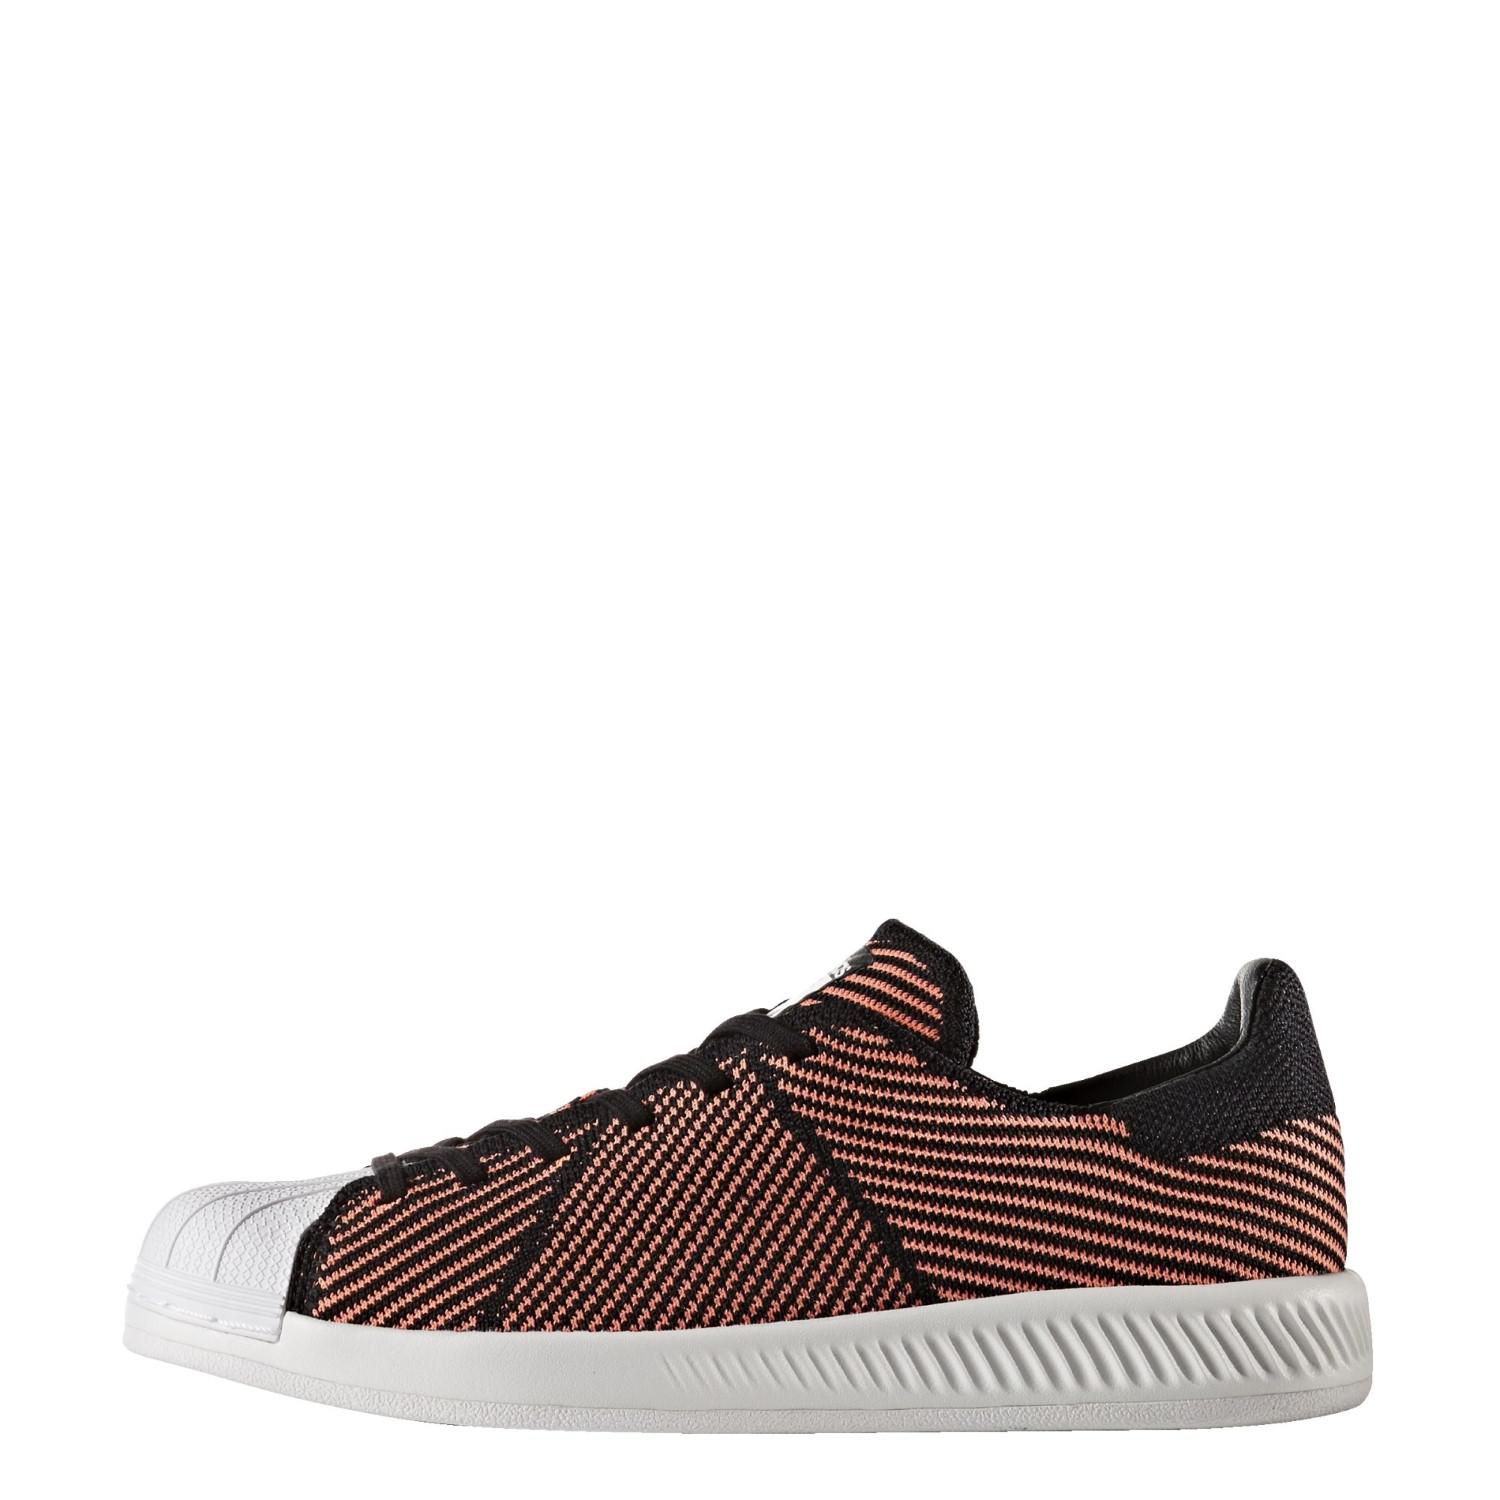 where can i buy adidas superstar bounce primeknit shoes